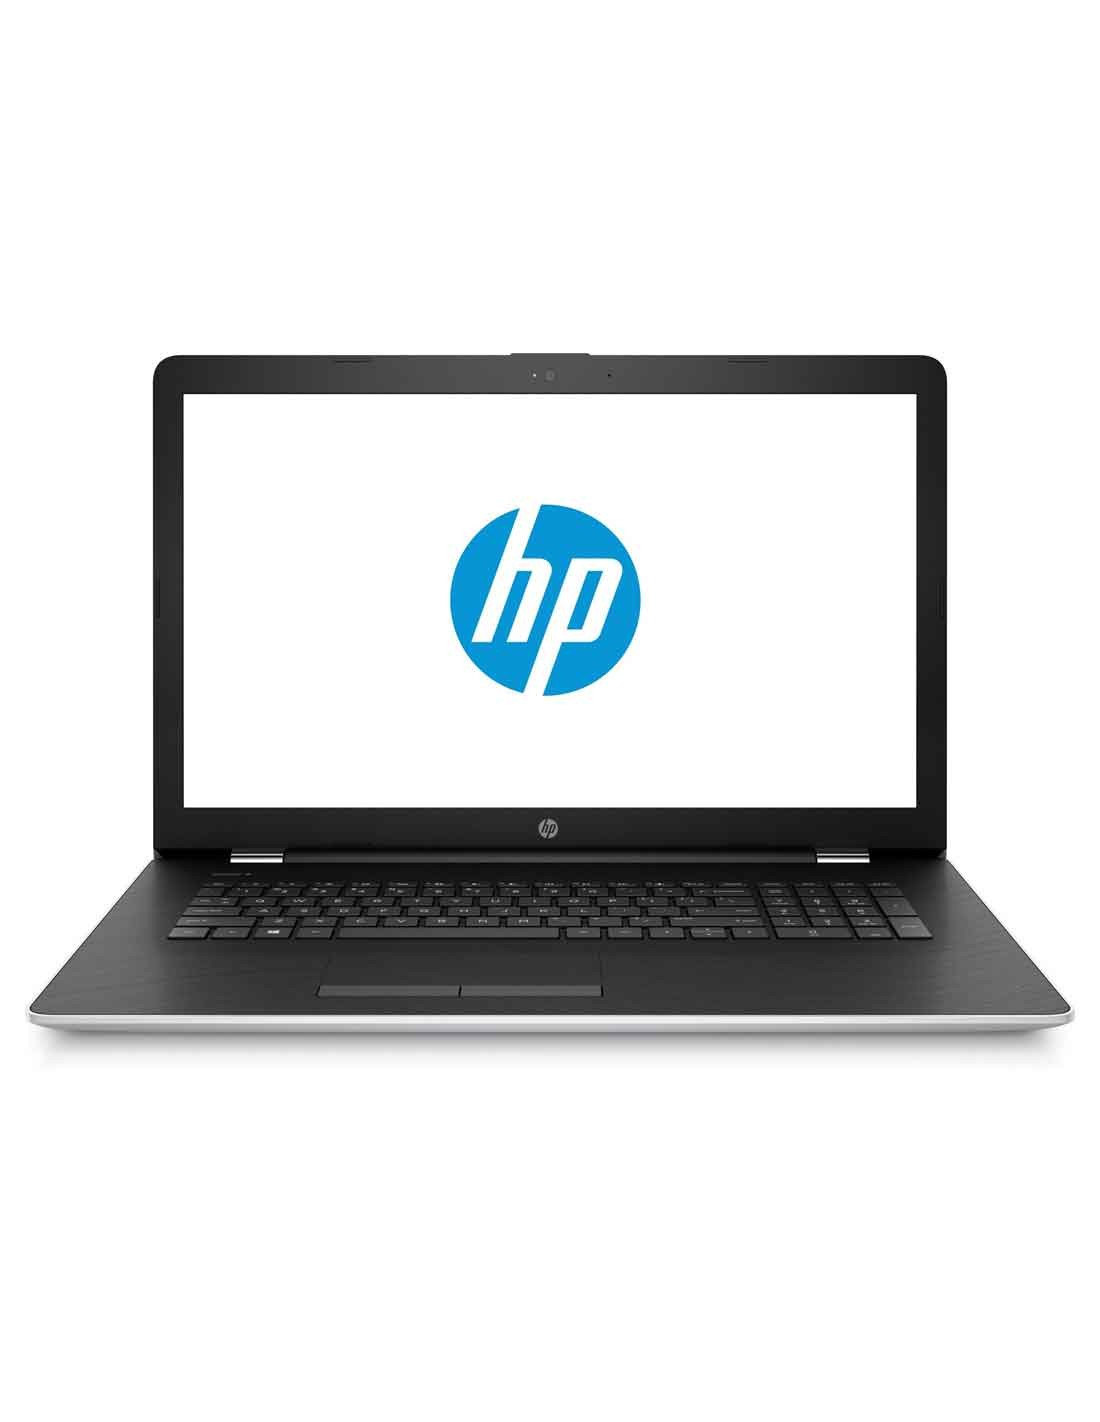 HP Notebook 15-bs123ne at the cheapest price in Dubai